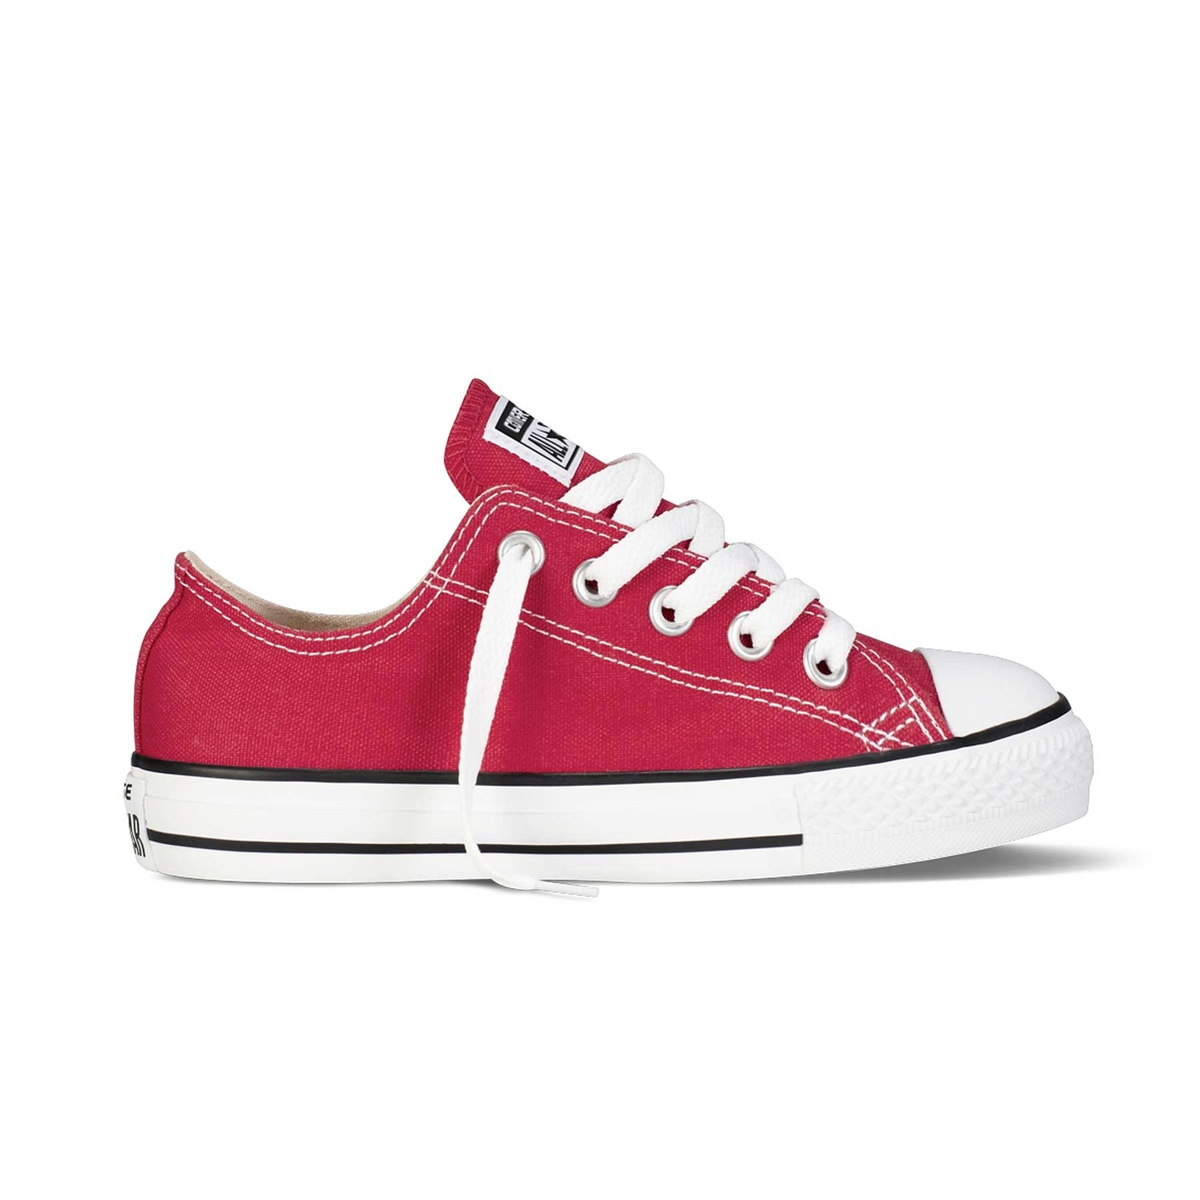 Chuck Taylor All Star Ox rosse bambino